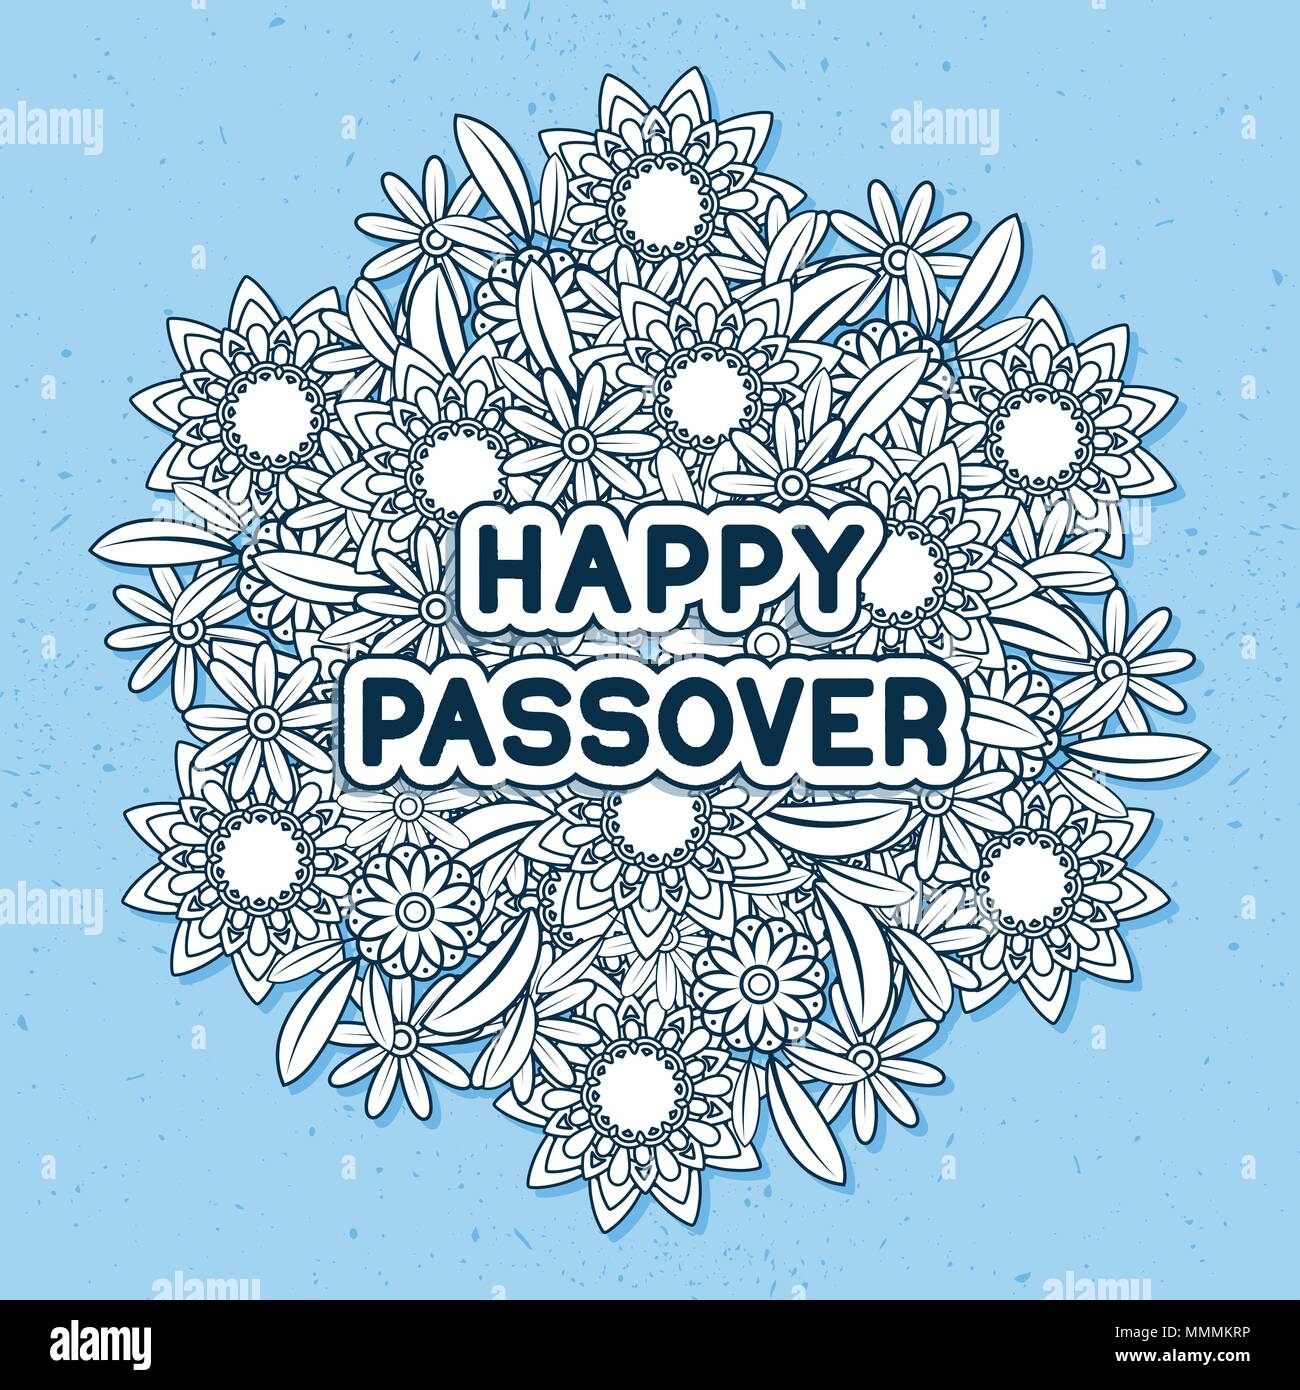 Jewish holiday greeting card template spring flowers bouquet jewish holiday greeting card template spring flowers bouquet greeting text happy passover linear style vector illustration blue background m4hsunfo